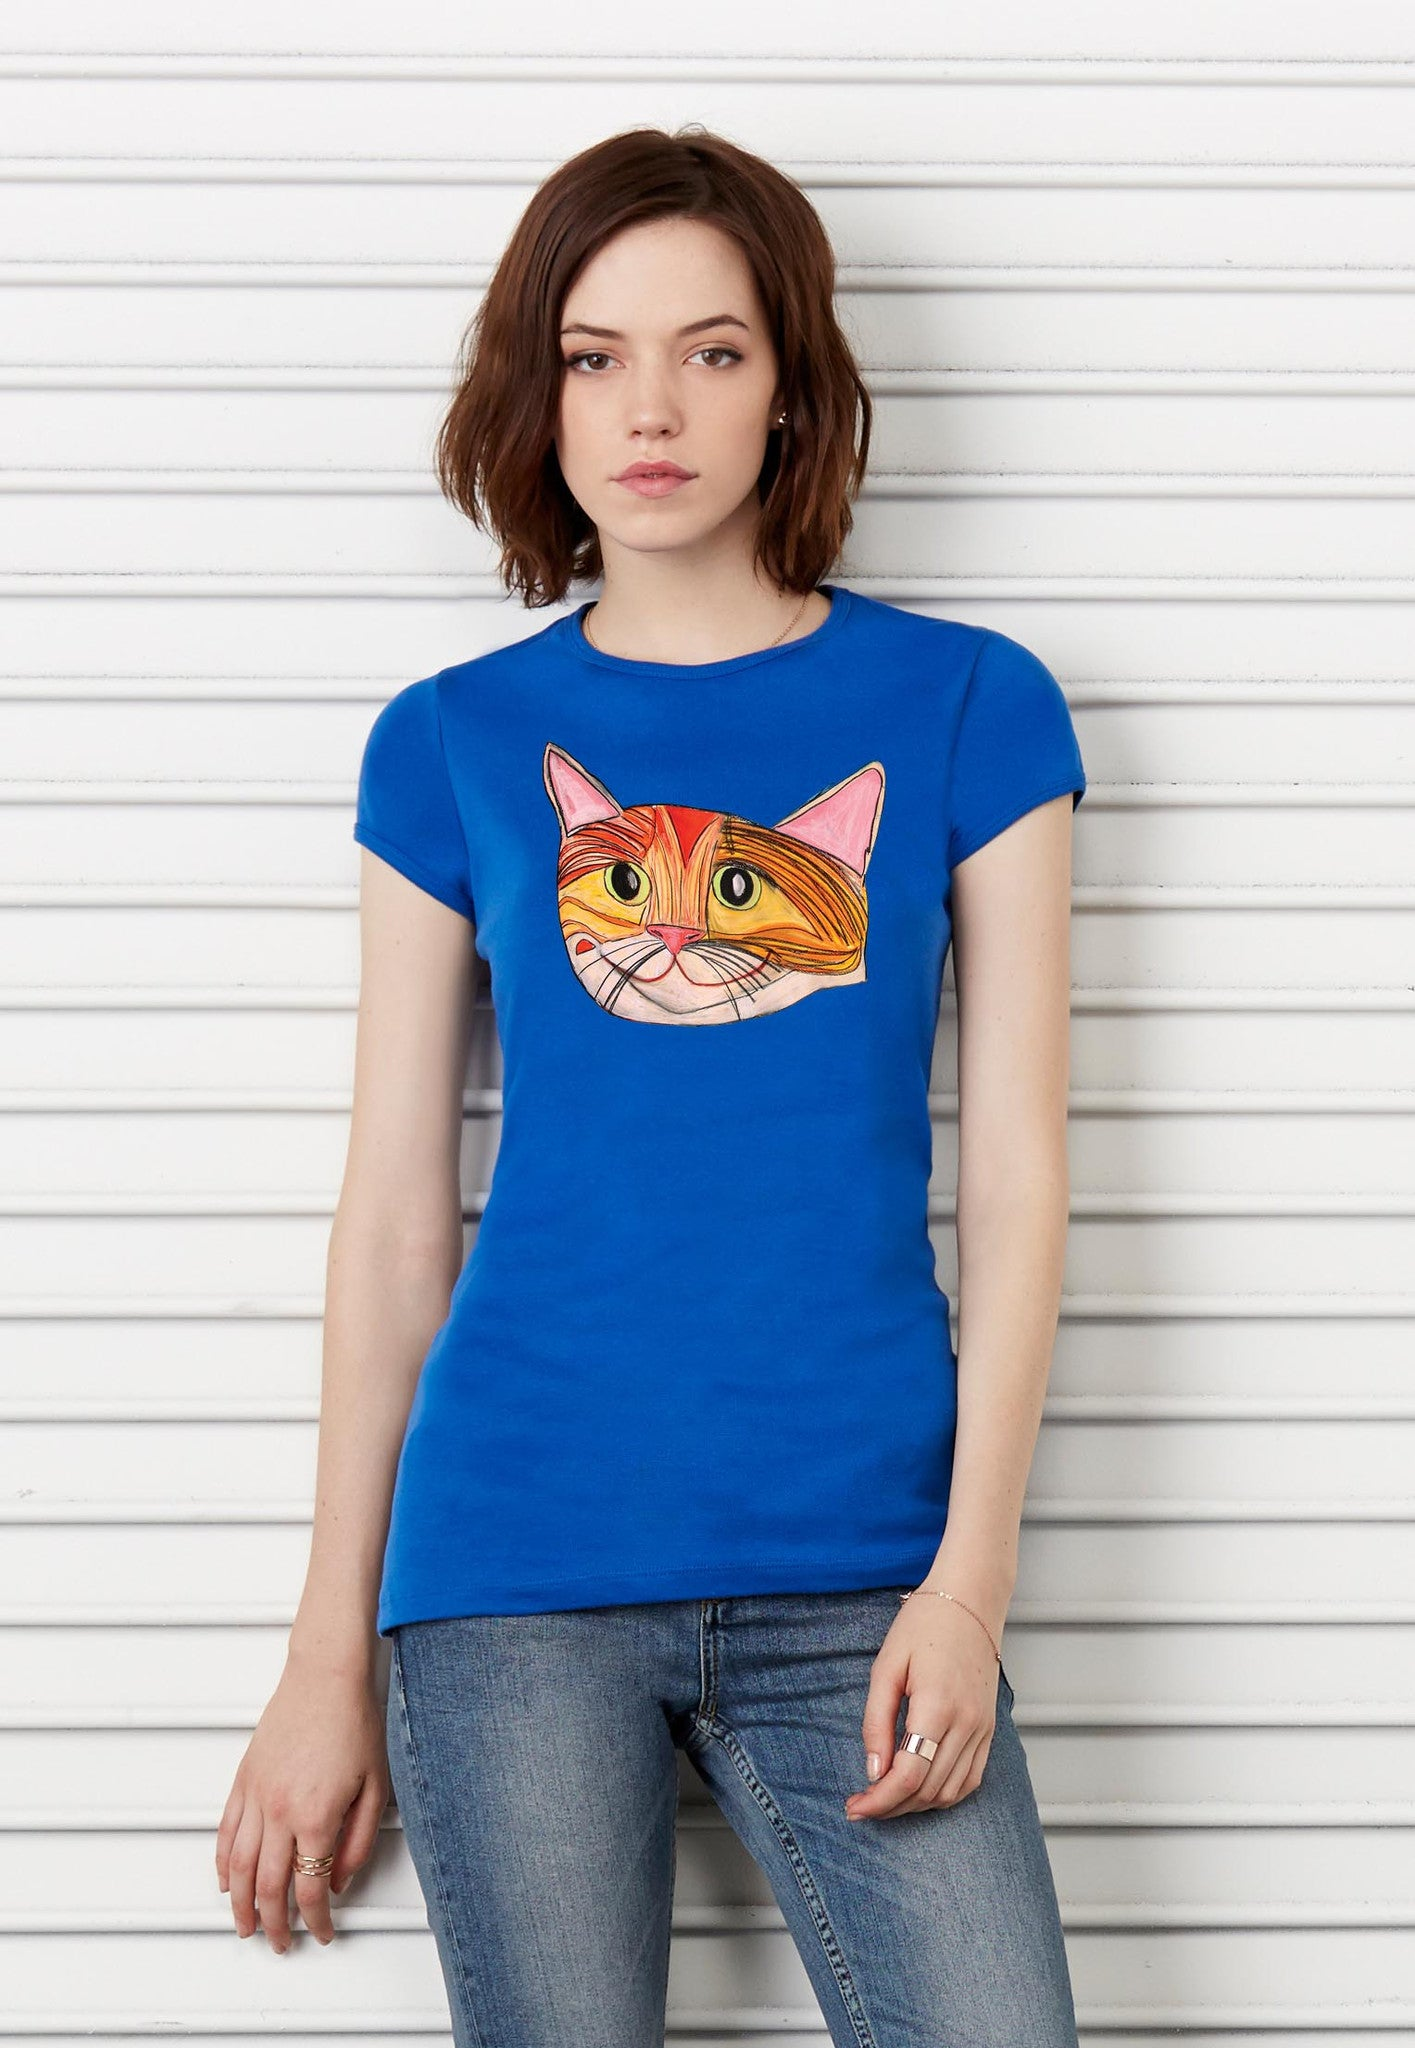 Windy City Pussy T-Shirt